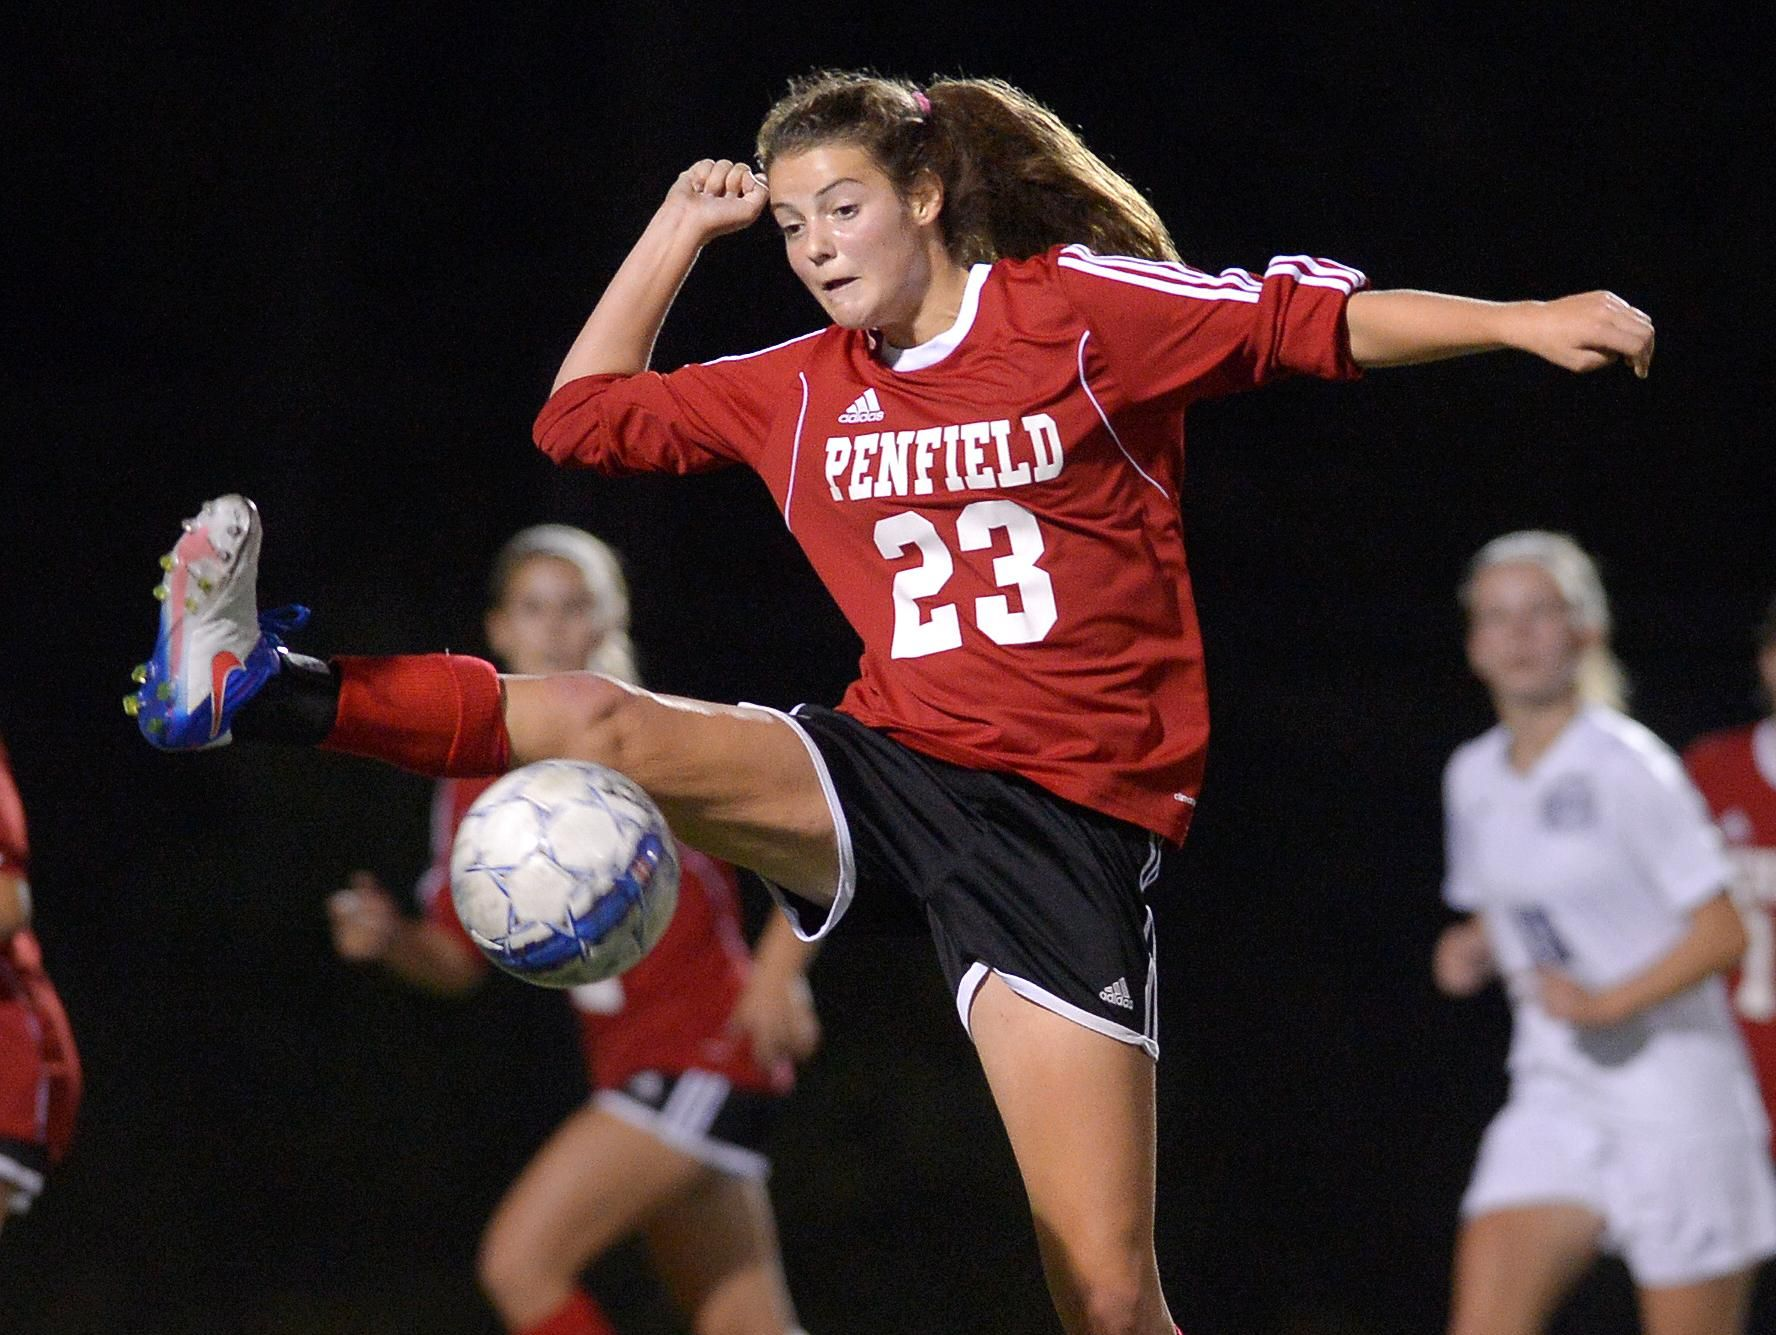 Penfield's Sophie Richiusa reaches to settle the ball.